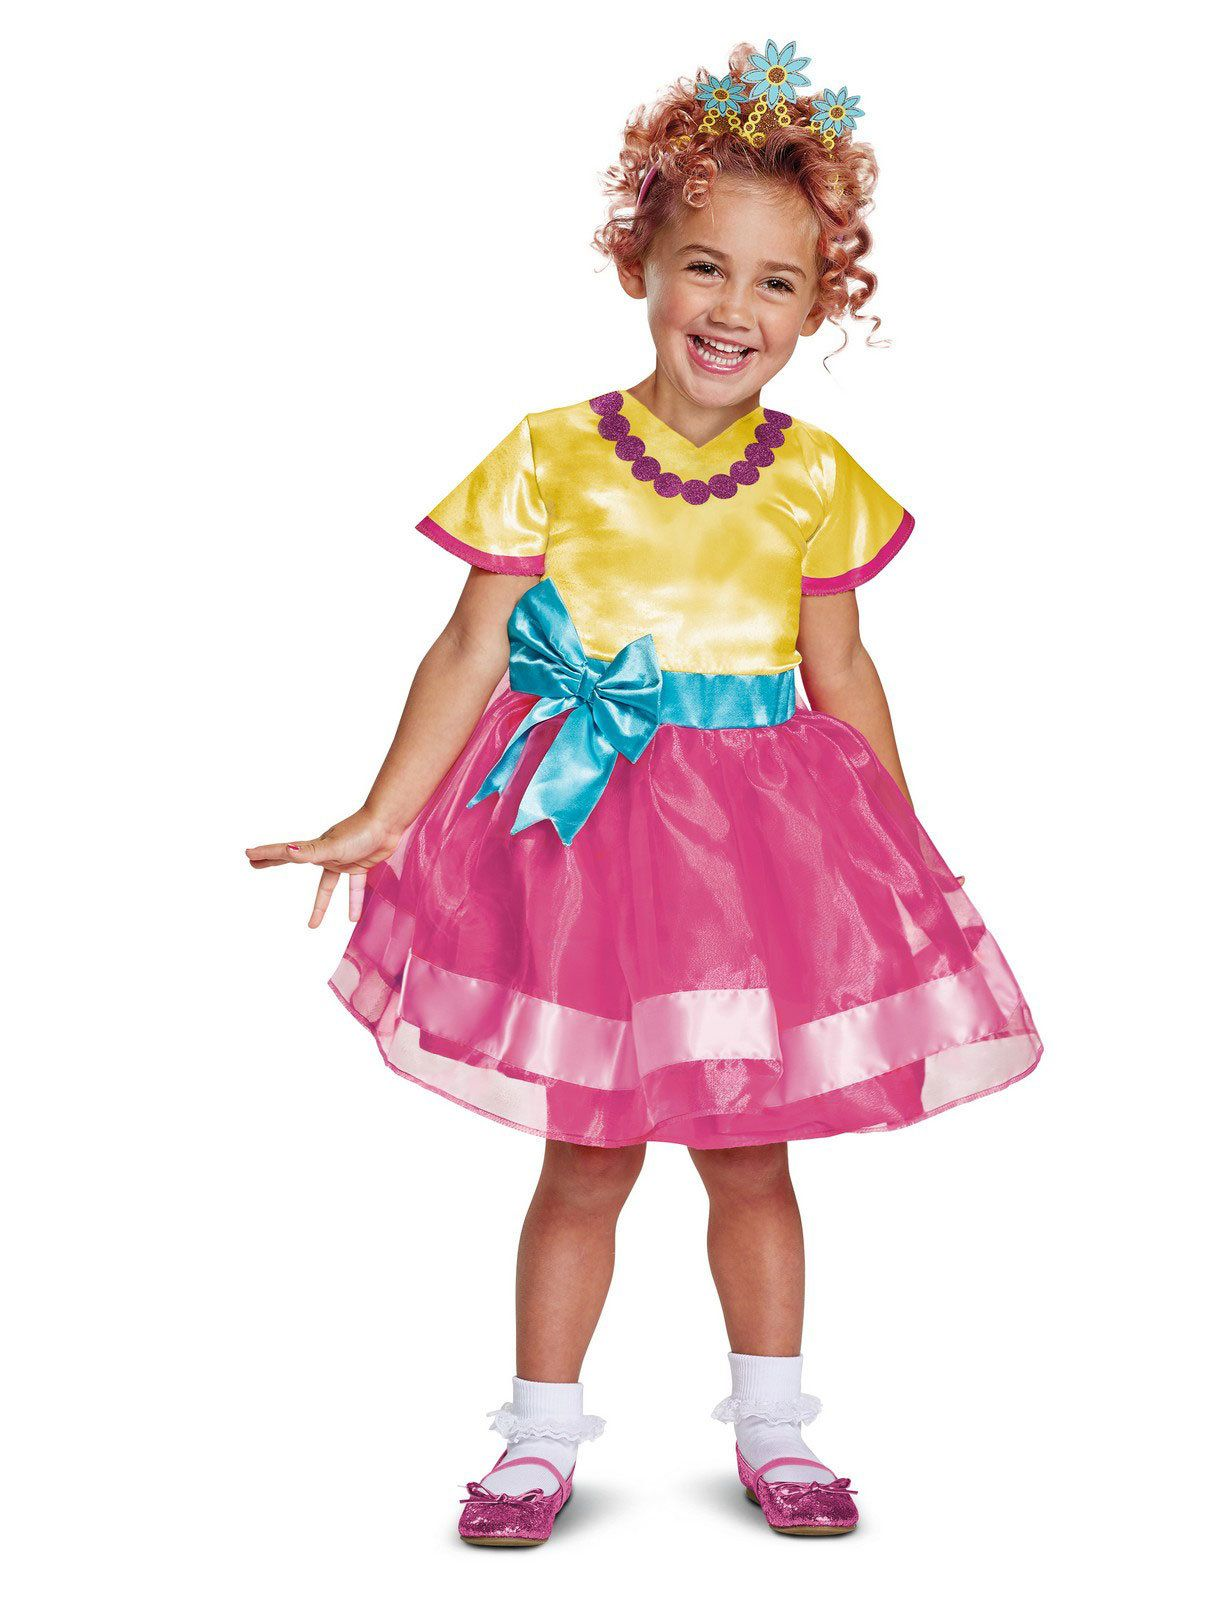 childu0027s fancy nancy costume sc 1 st wholesale halloween costumes